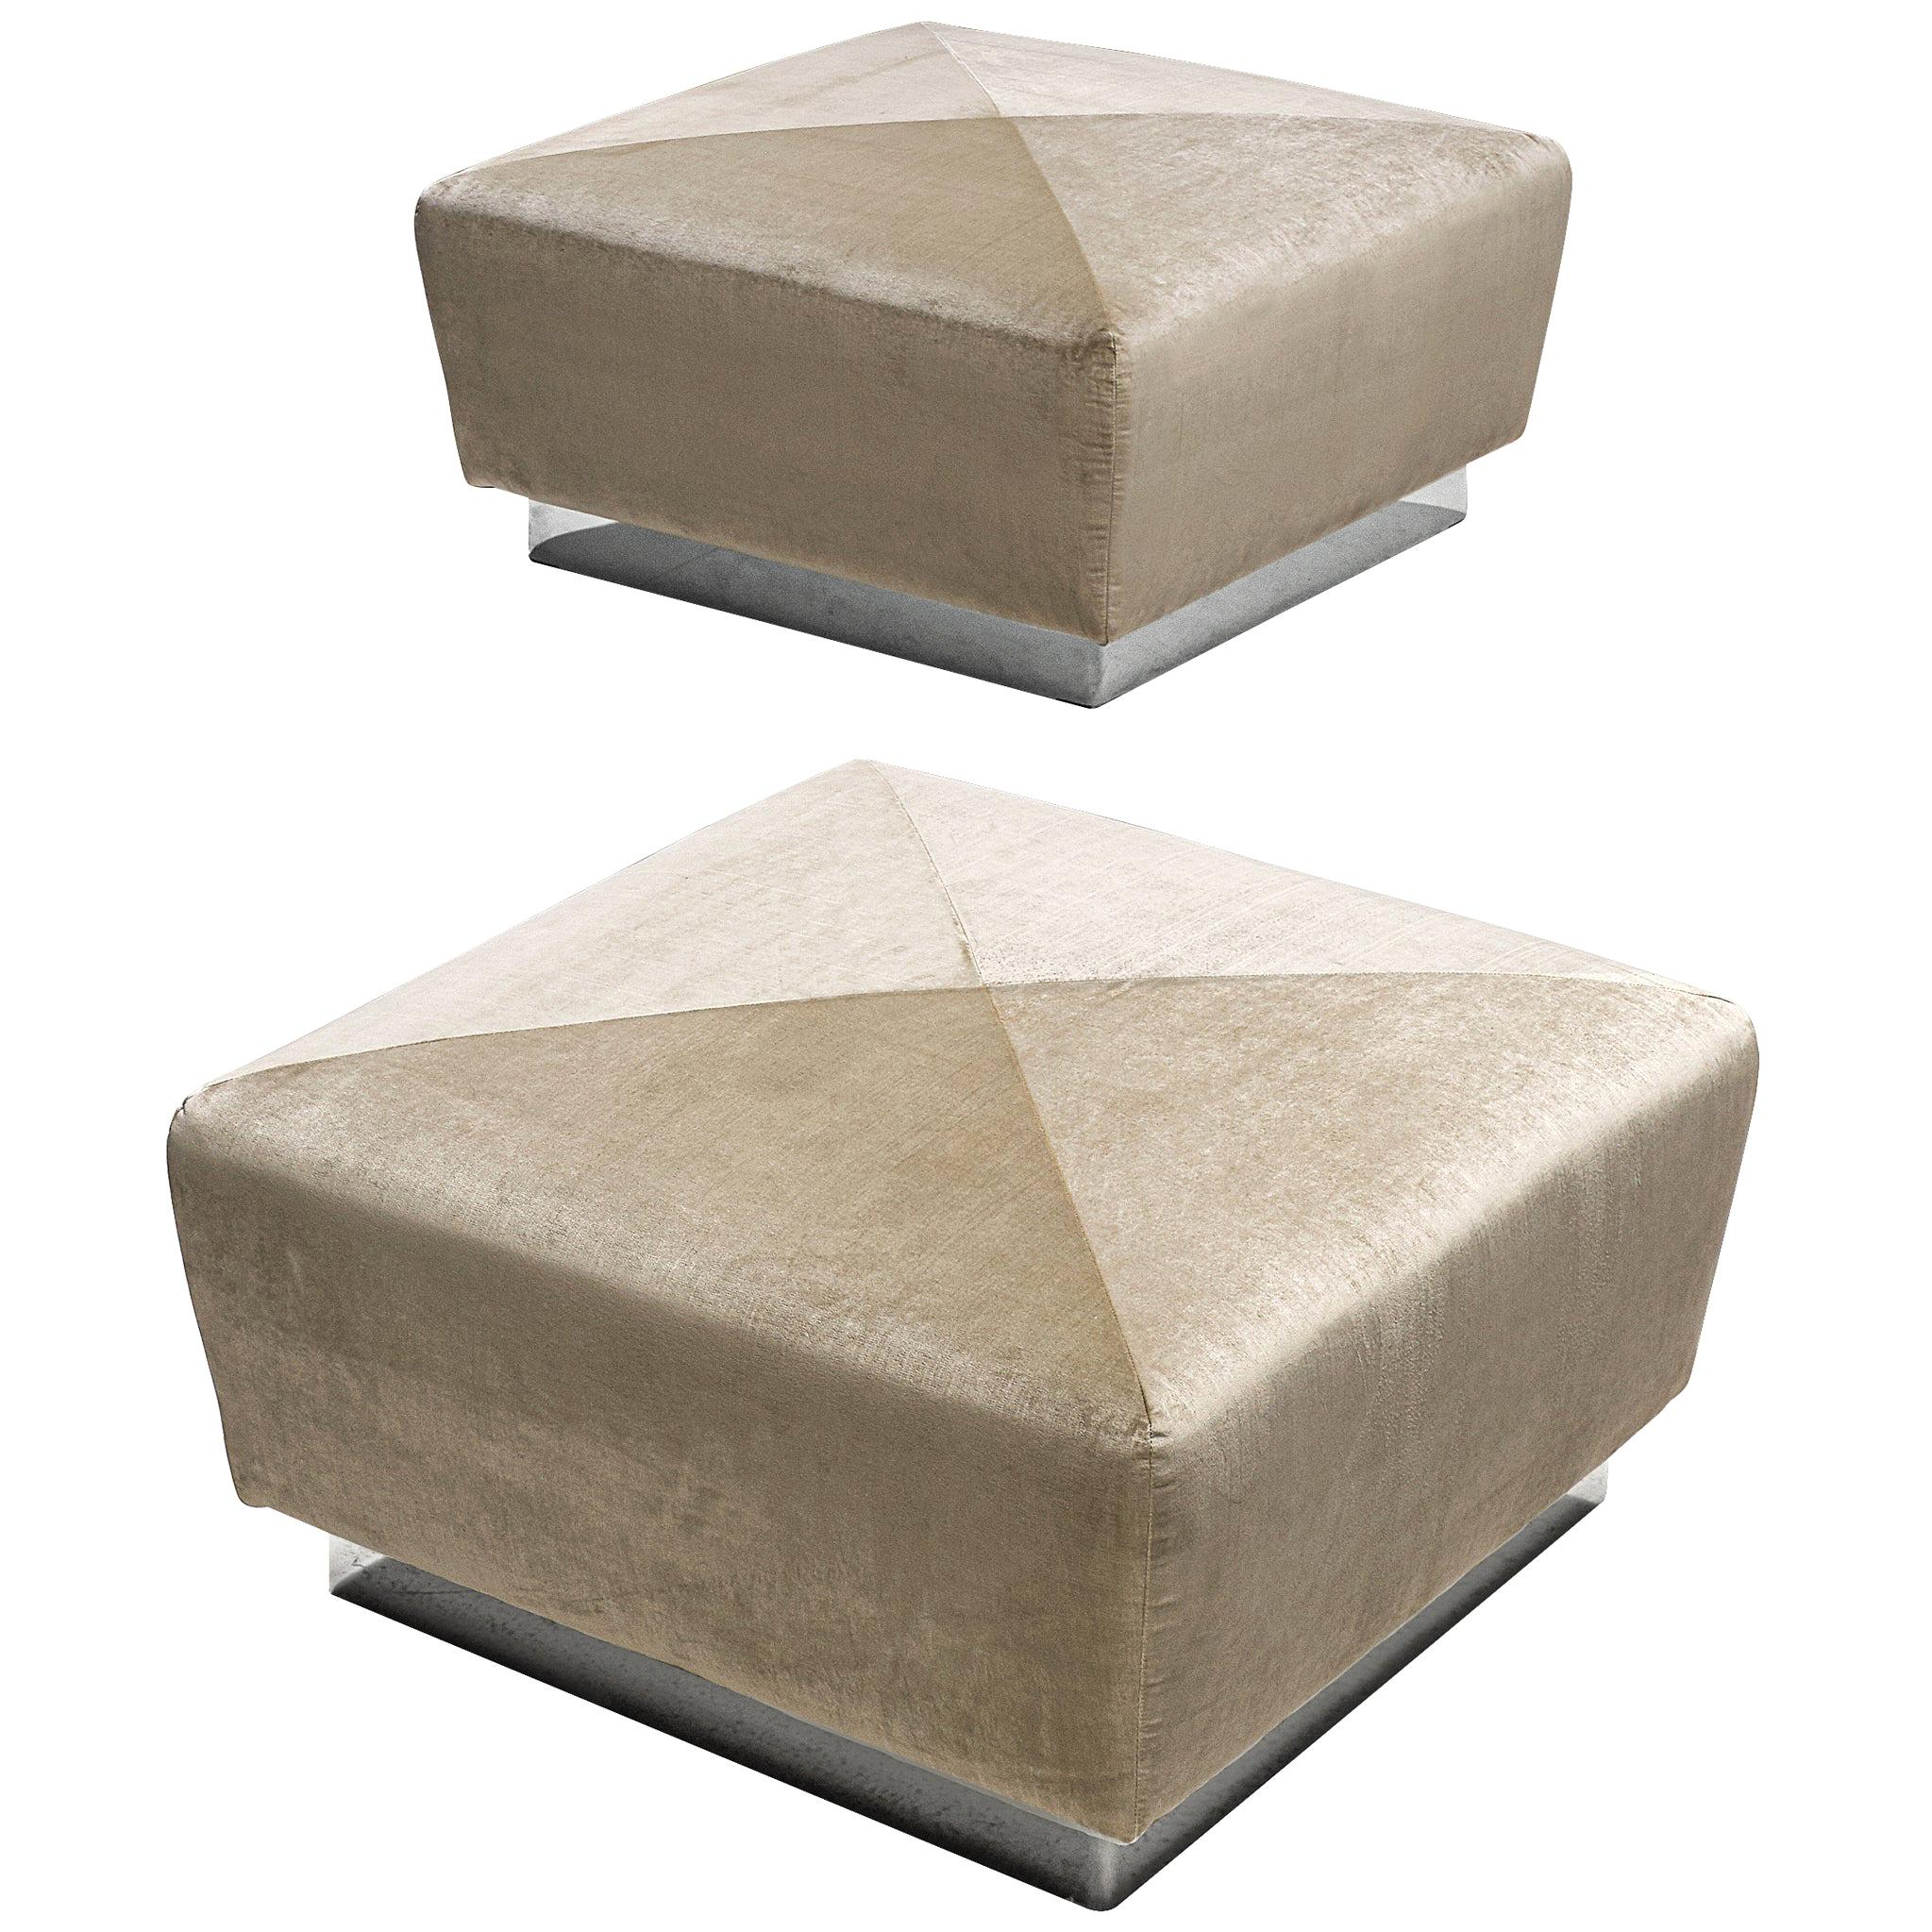 Pair of Large Poufs by Saporiti in Velvet Upholstery